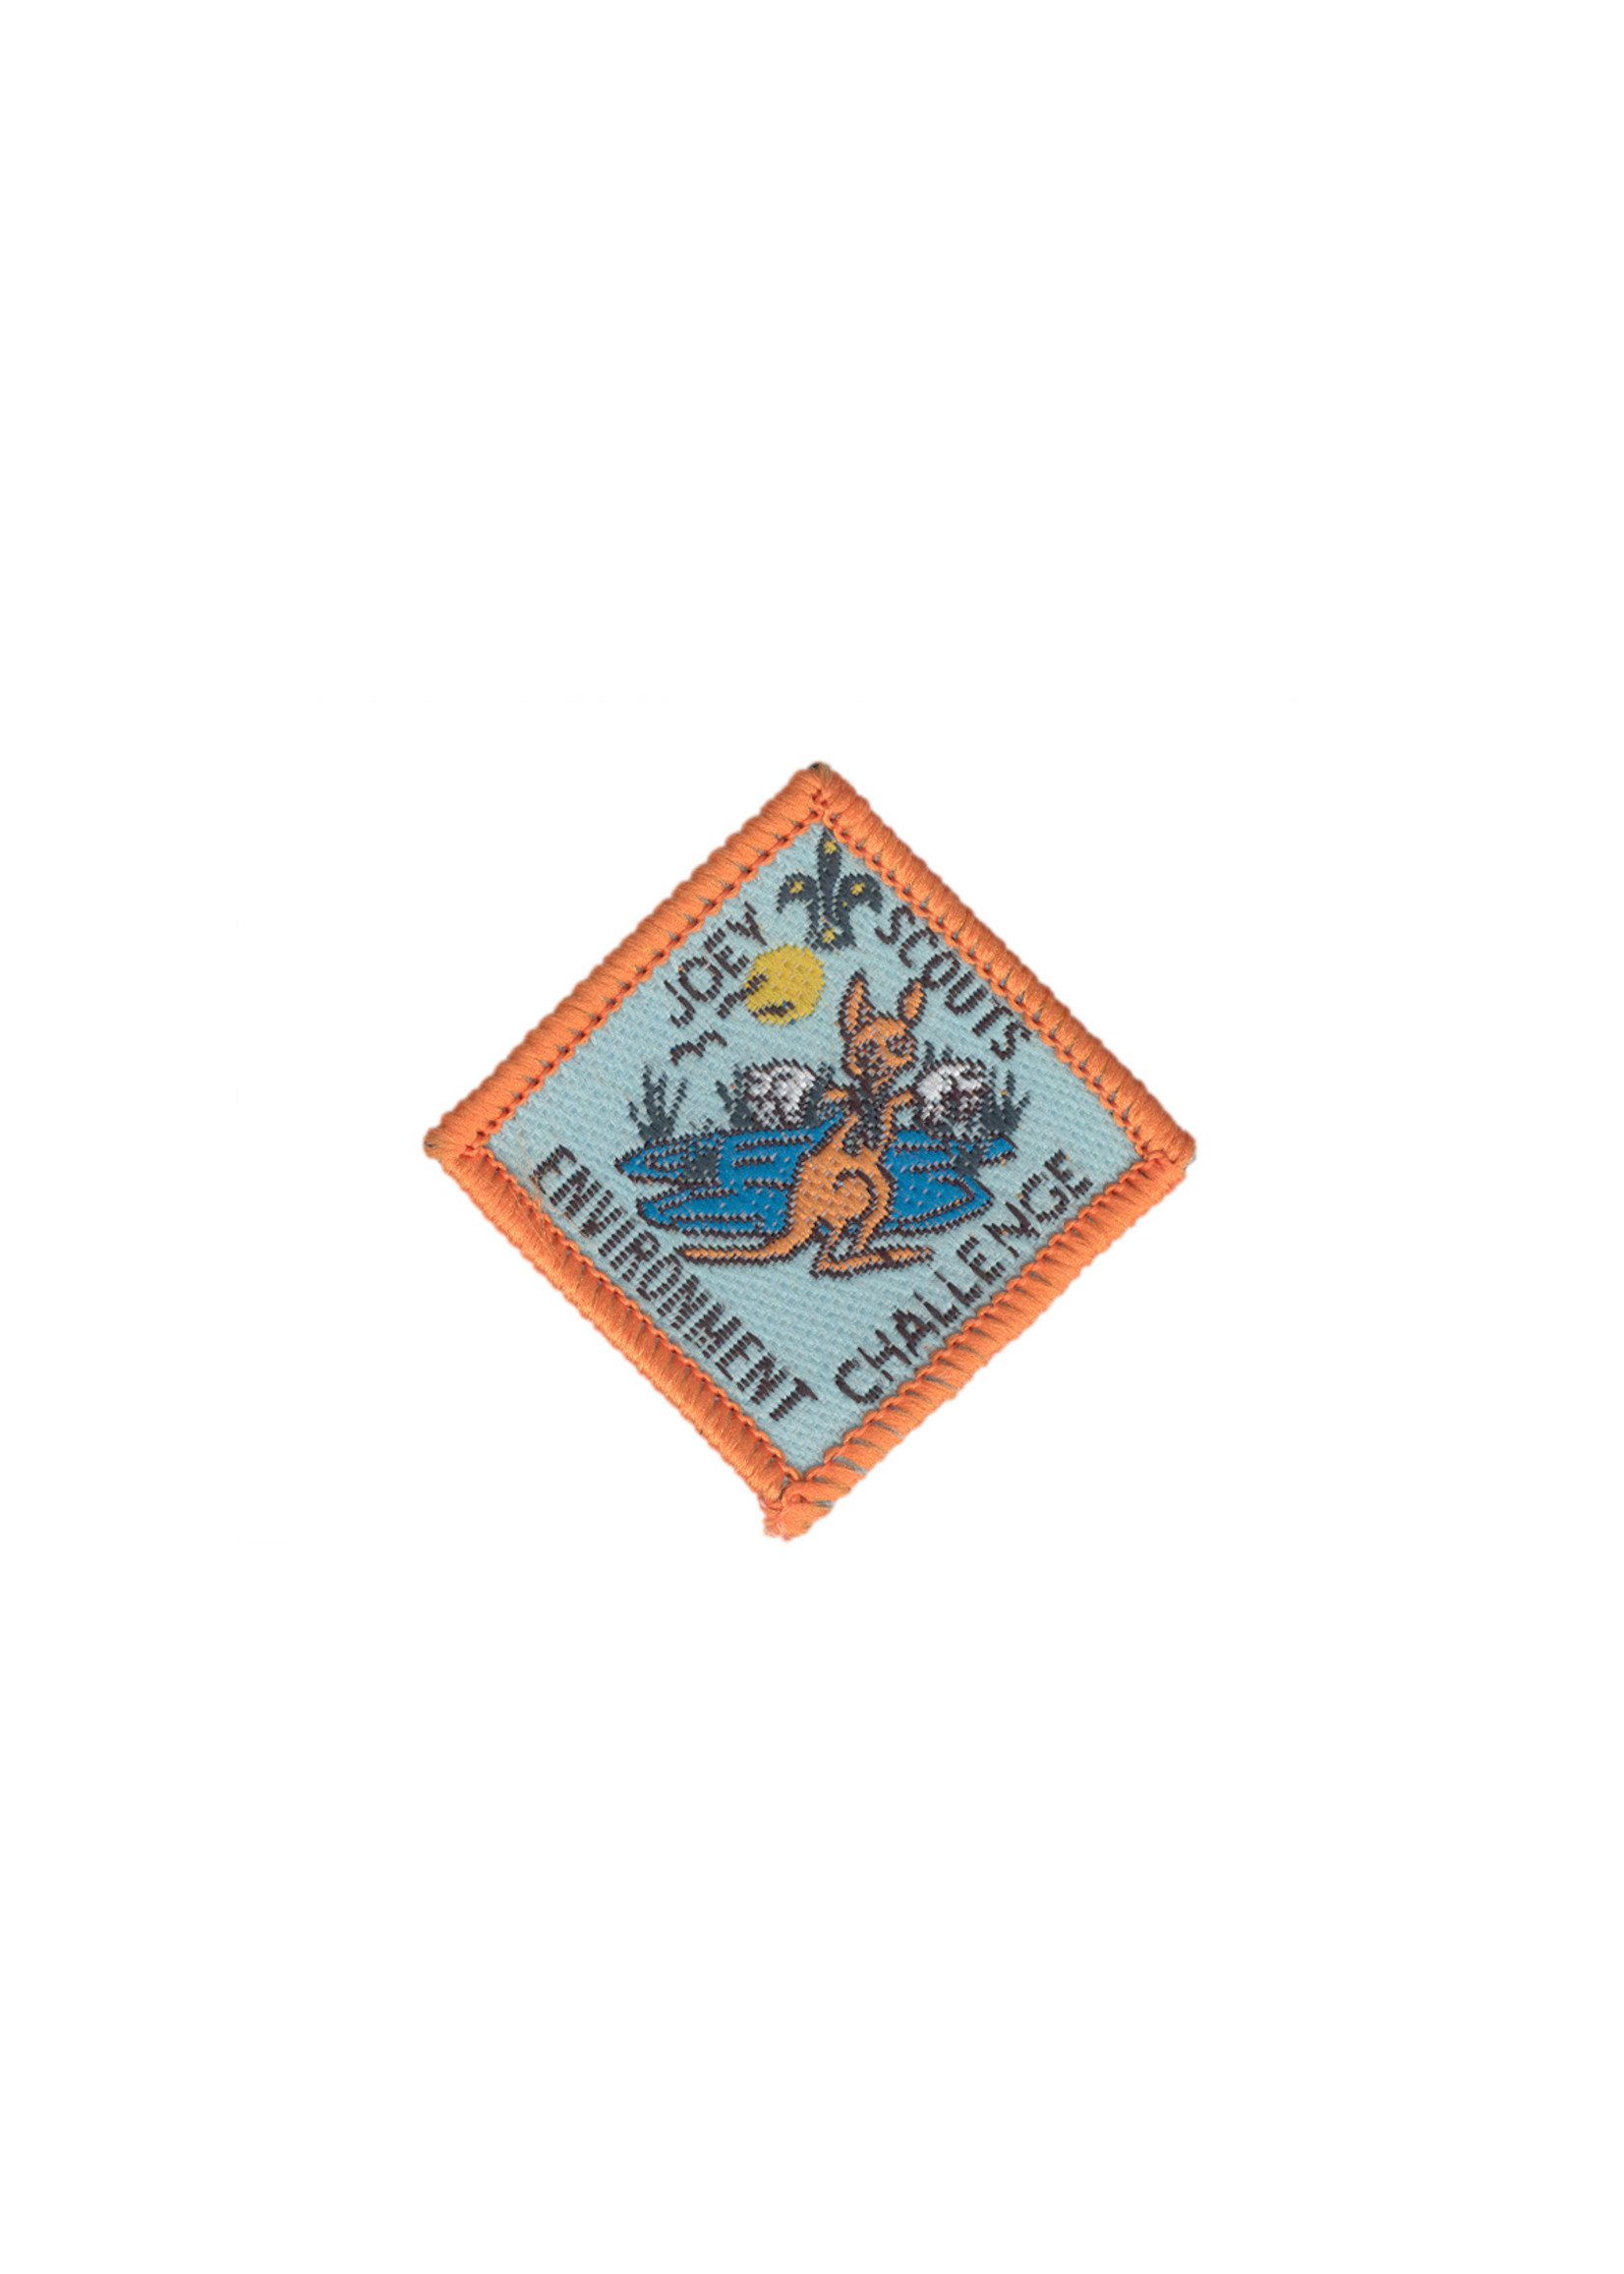 Joey Scouts - Environment Challenge Badge